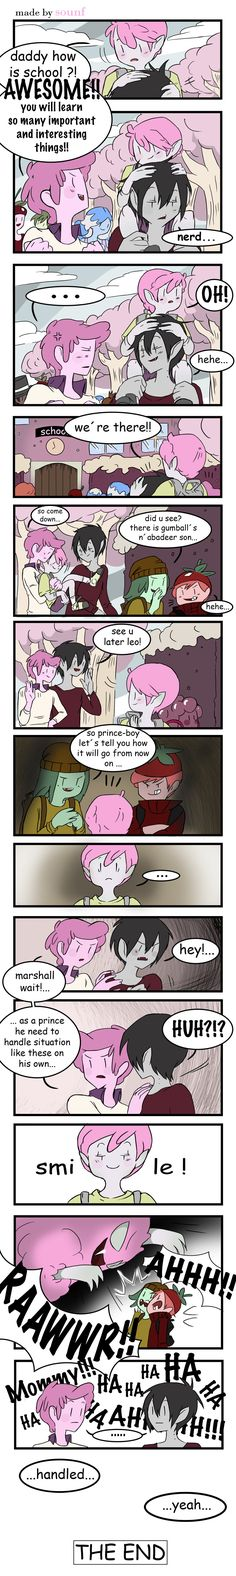 comic 7 by Sounf on DeviantArt | Marshall Lee x Prince Gumball | GumLee | Adventure Time